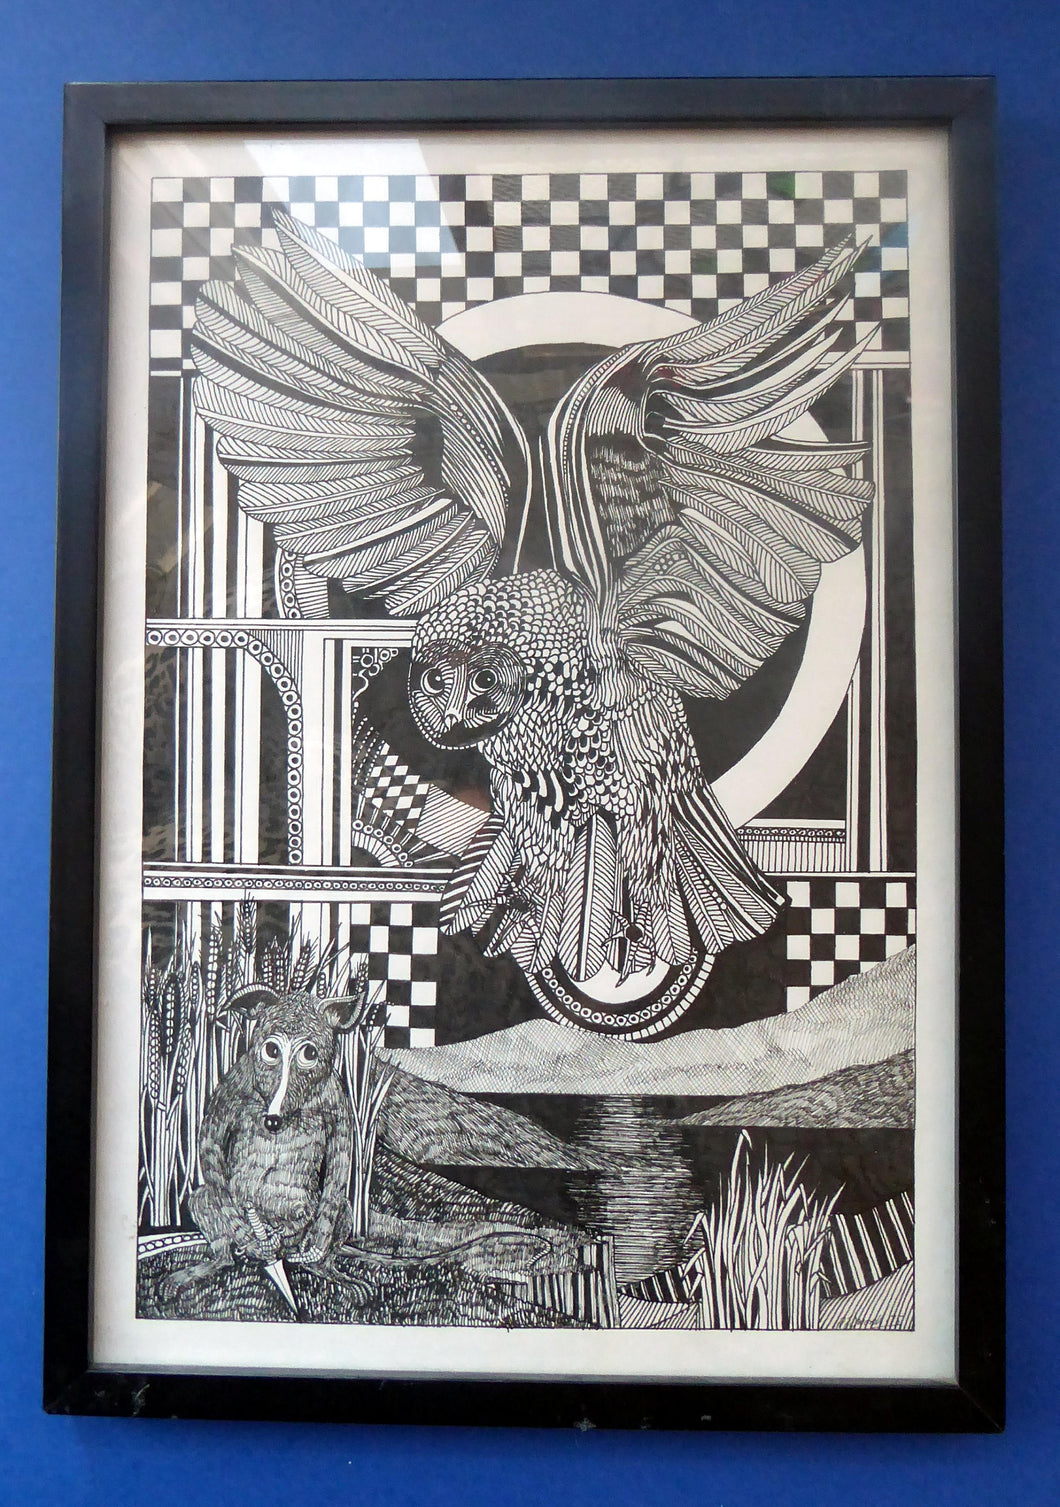 SCOTTISH ART: Vintage 1970s Drawing. SURREAL Dreamlike Image of an Owl and Field Mouse by Listed Artist Peter Dworok. Signed and dated 1975